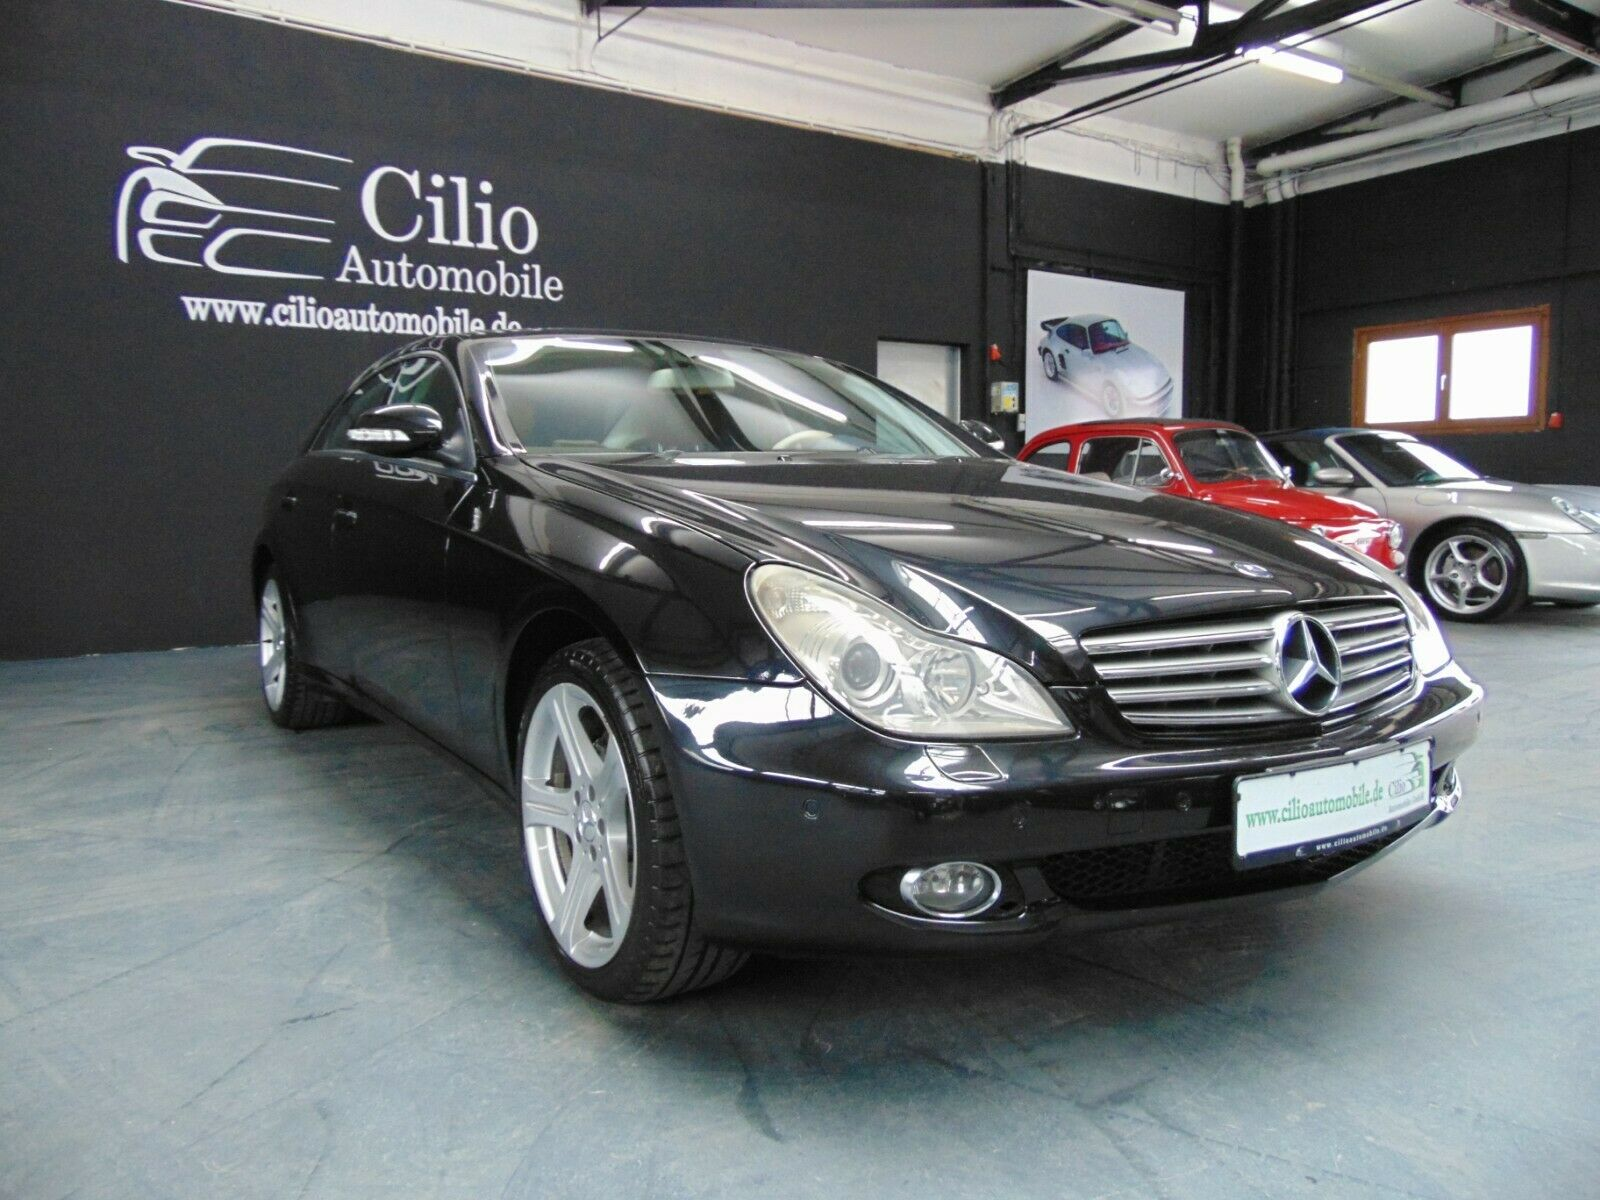 MERCEDES-BENZ CLS 320 CDI*COMAND*PDC*XENON*MEMORY*KEYLESS*